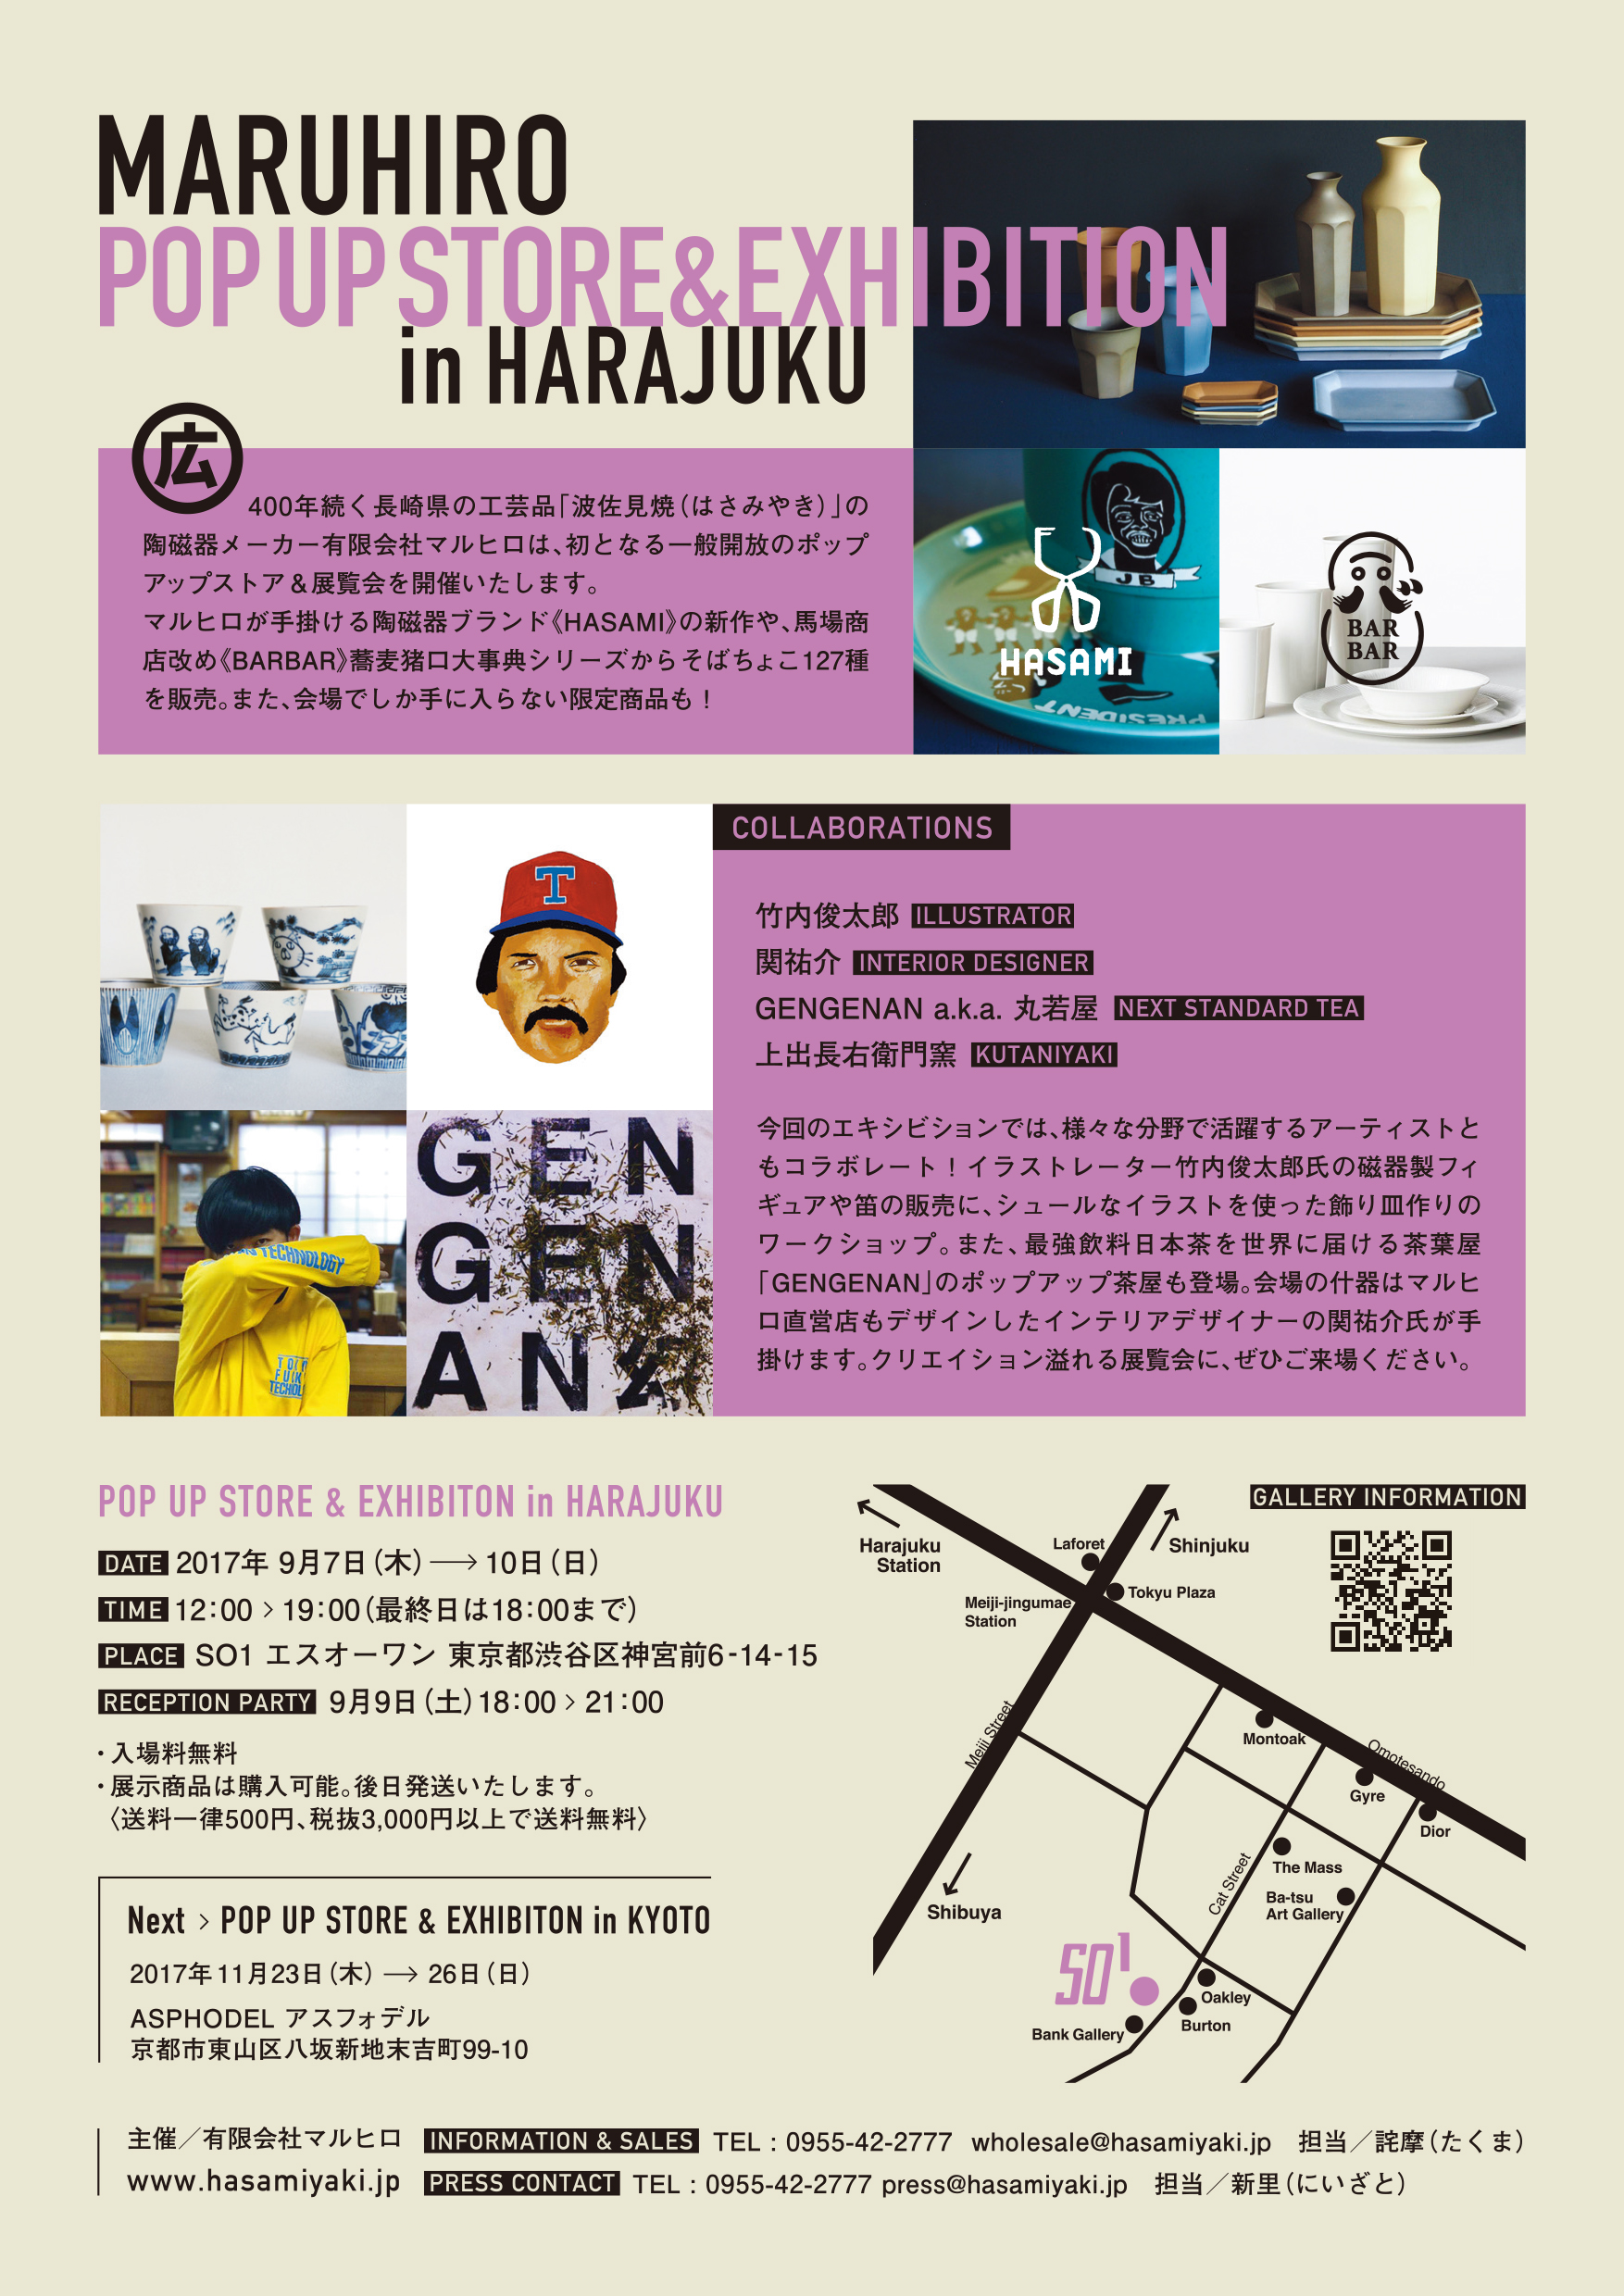 【EVENT】 マルヒロ POP UP STORE & EXHIBITION in HARAJUKU-image